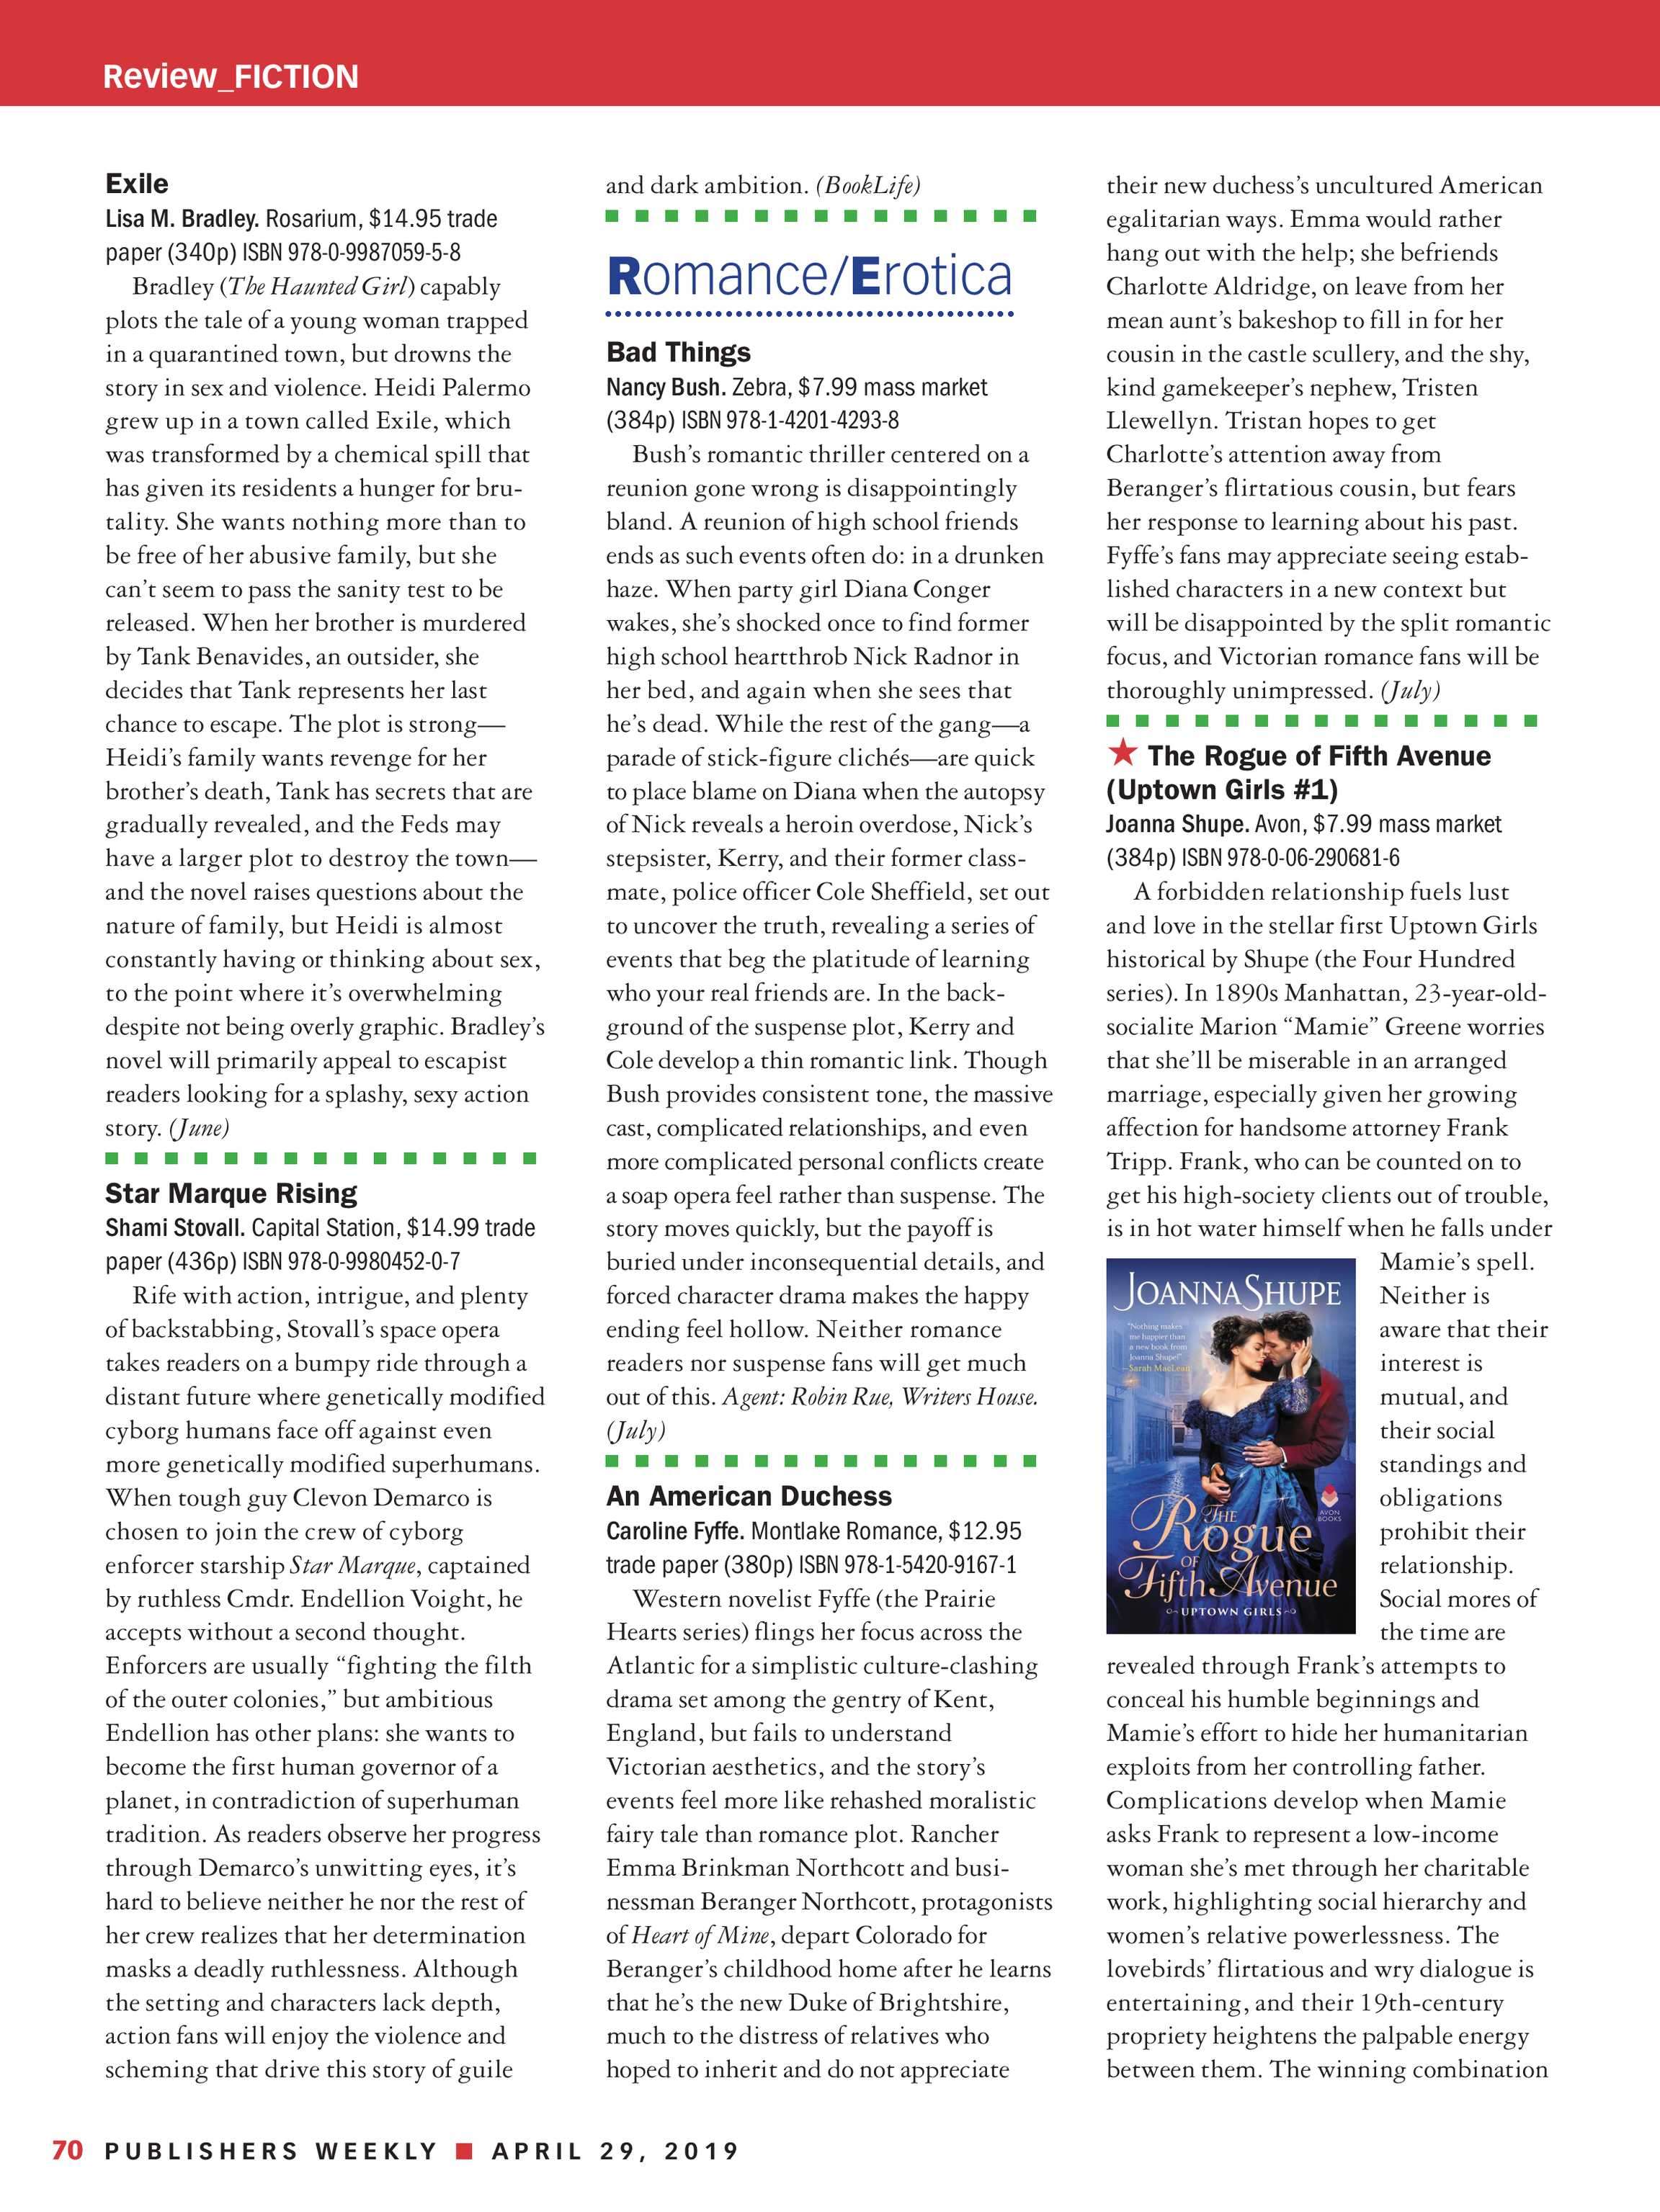 Publishers Weekly - April 29, 2019 - page 70